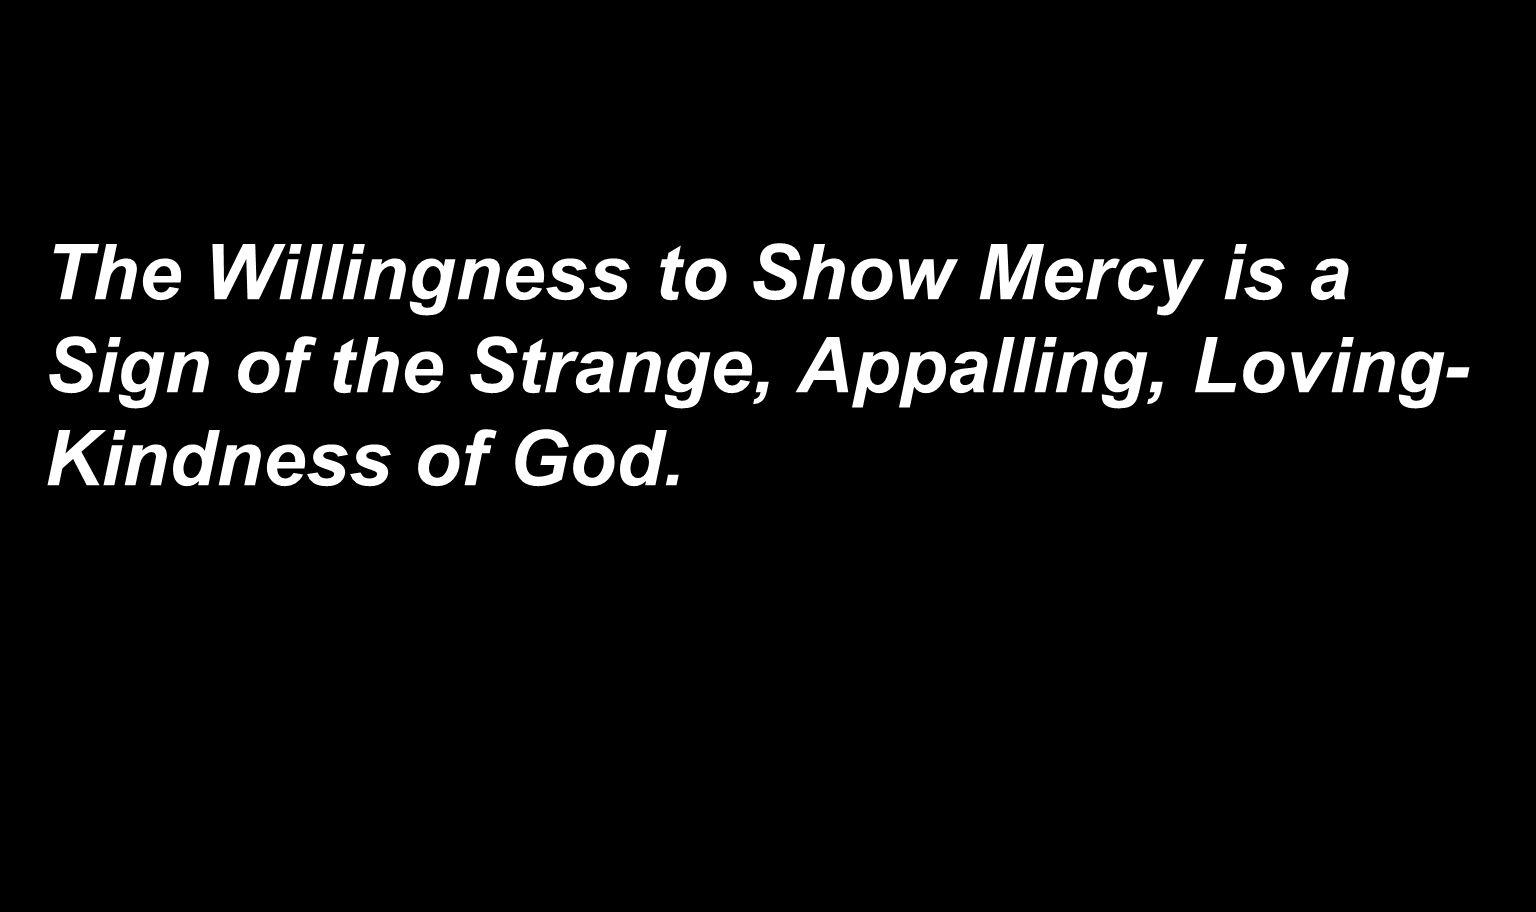 The Willingness to Show Mercy is a Sign of the Strange, Appalling, Loving-Kindness of God.